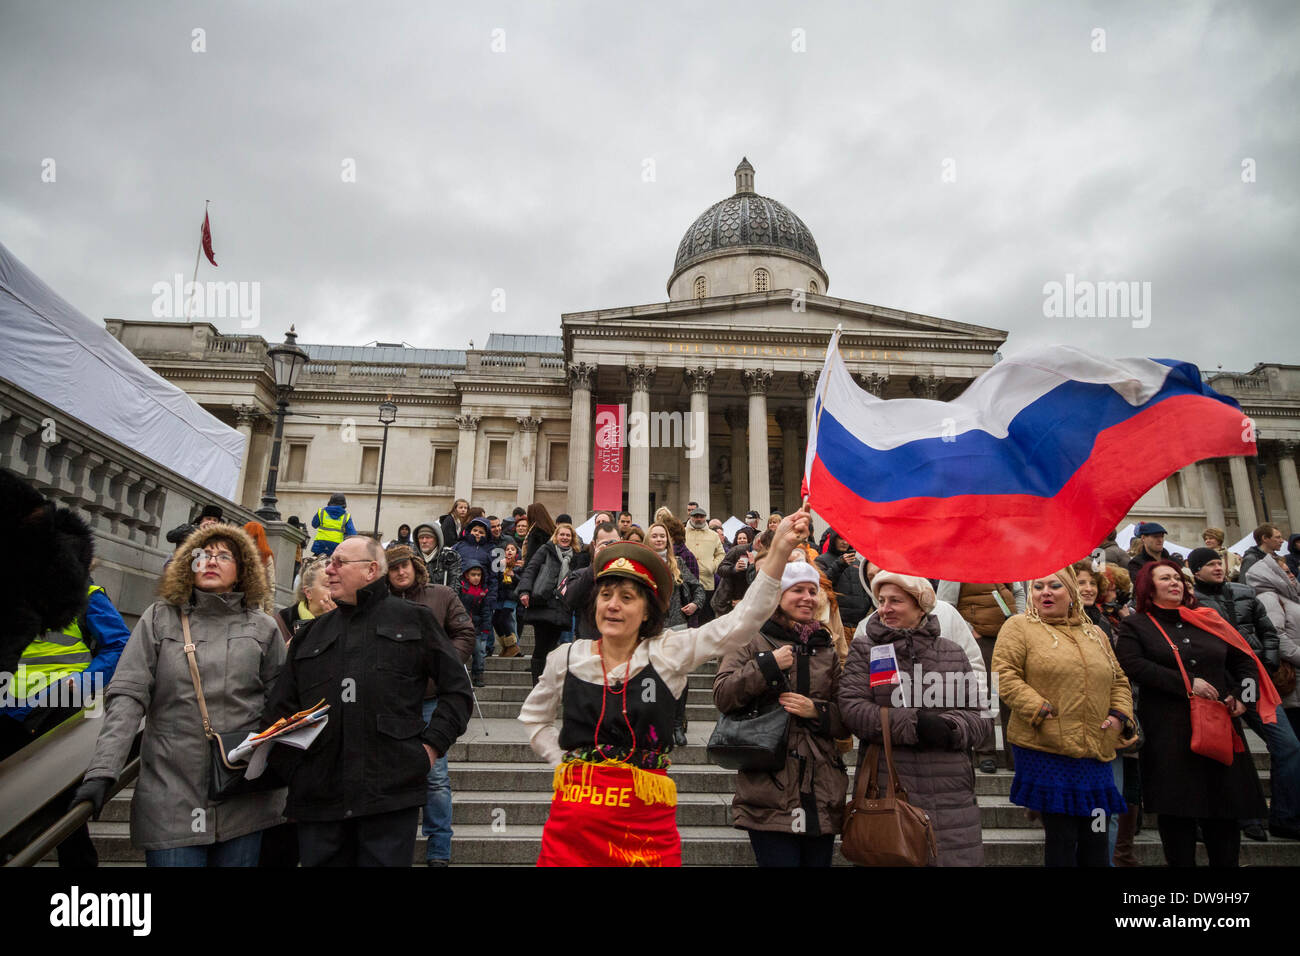 spectator with flag of russia in the crowd for russian maslenitsa